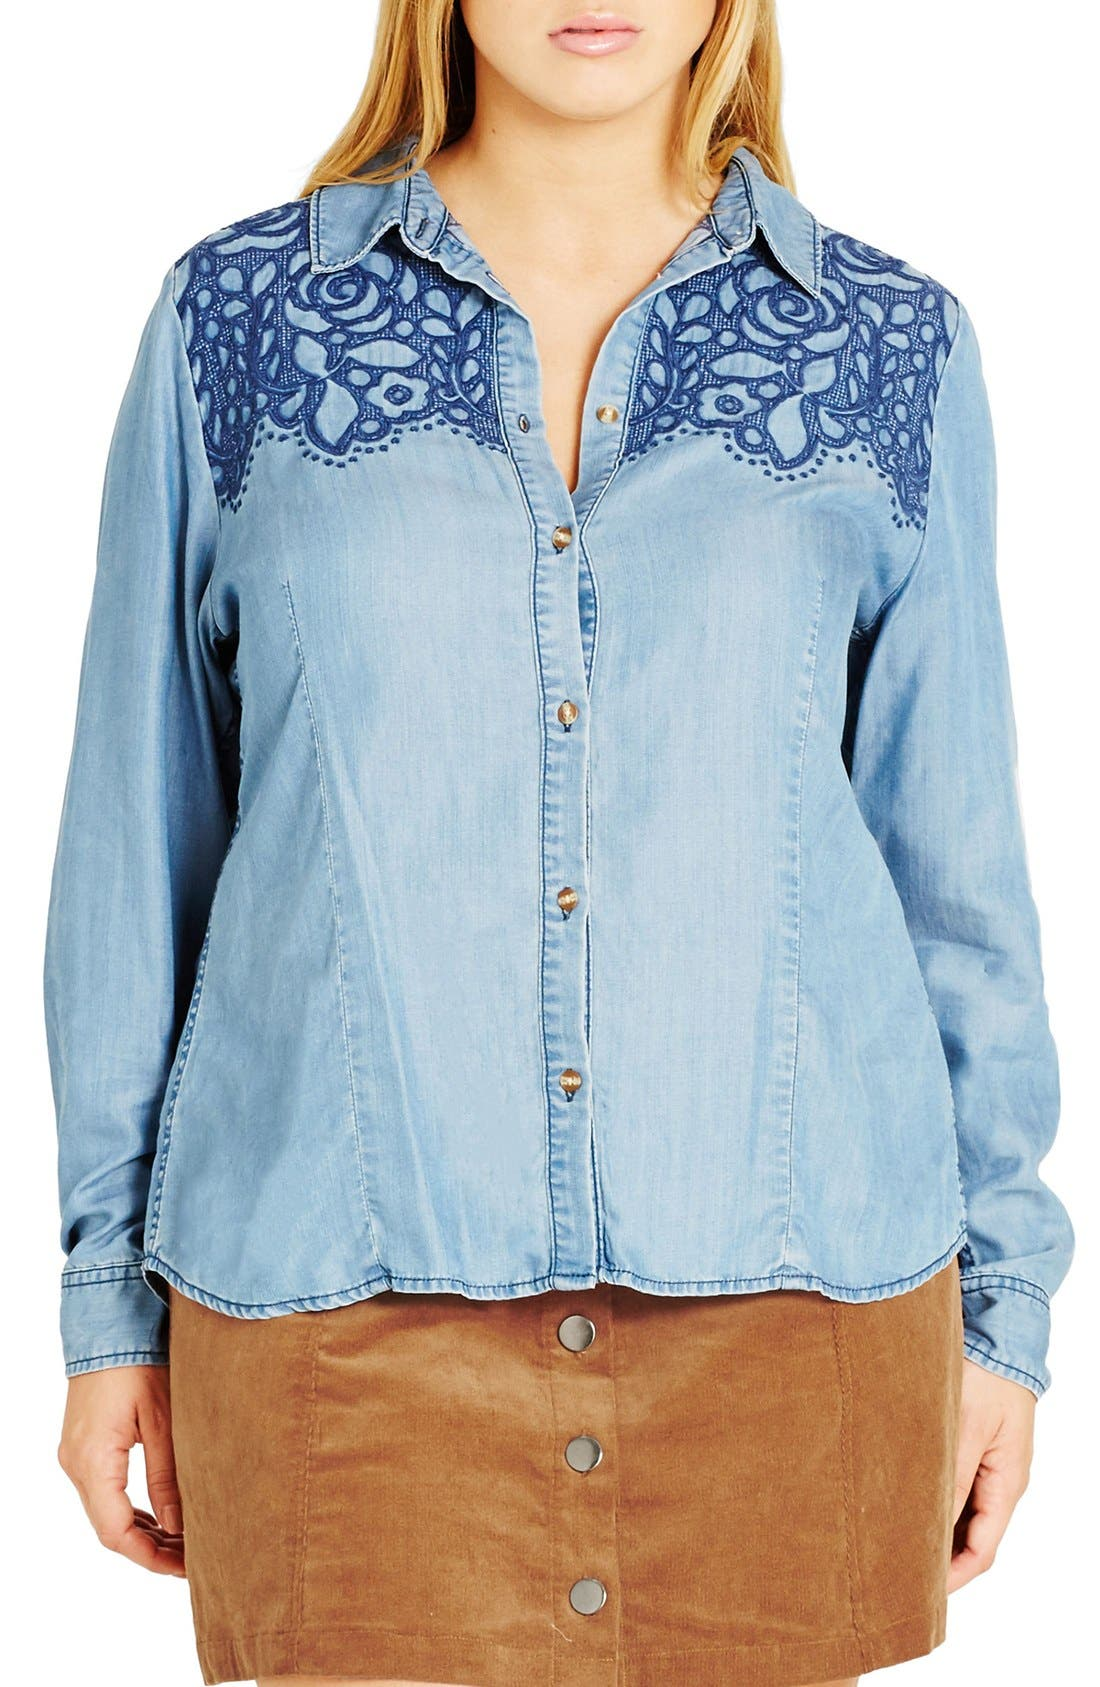 'Rodeo' Embroidered Denim Shirt,                             Main thumbnail 1, color,                             409